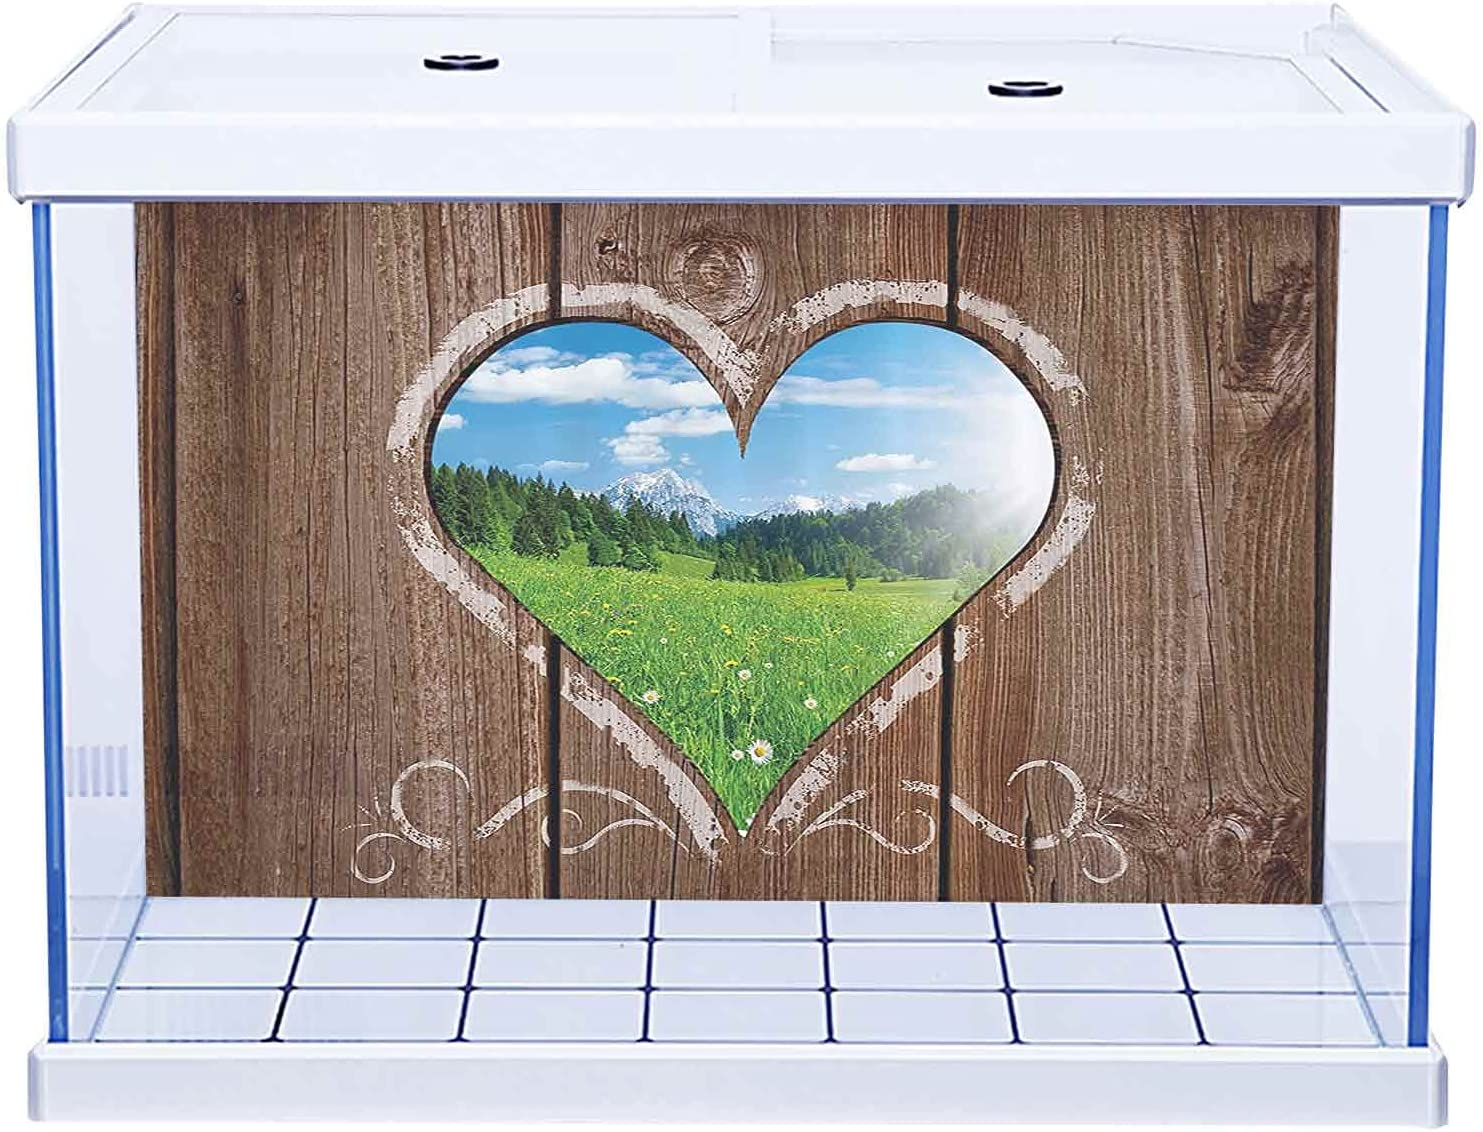 3D Paper Poster Aquarium Background 67% OFF of fixed price Outhouse New sales f Heart View Window